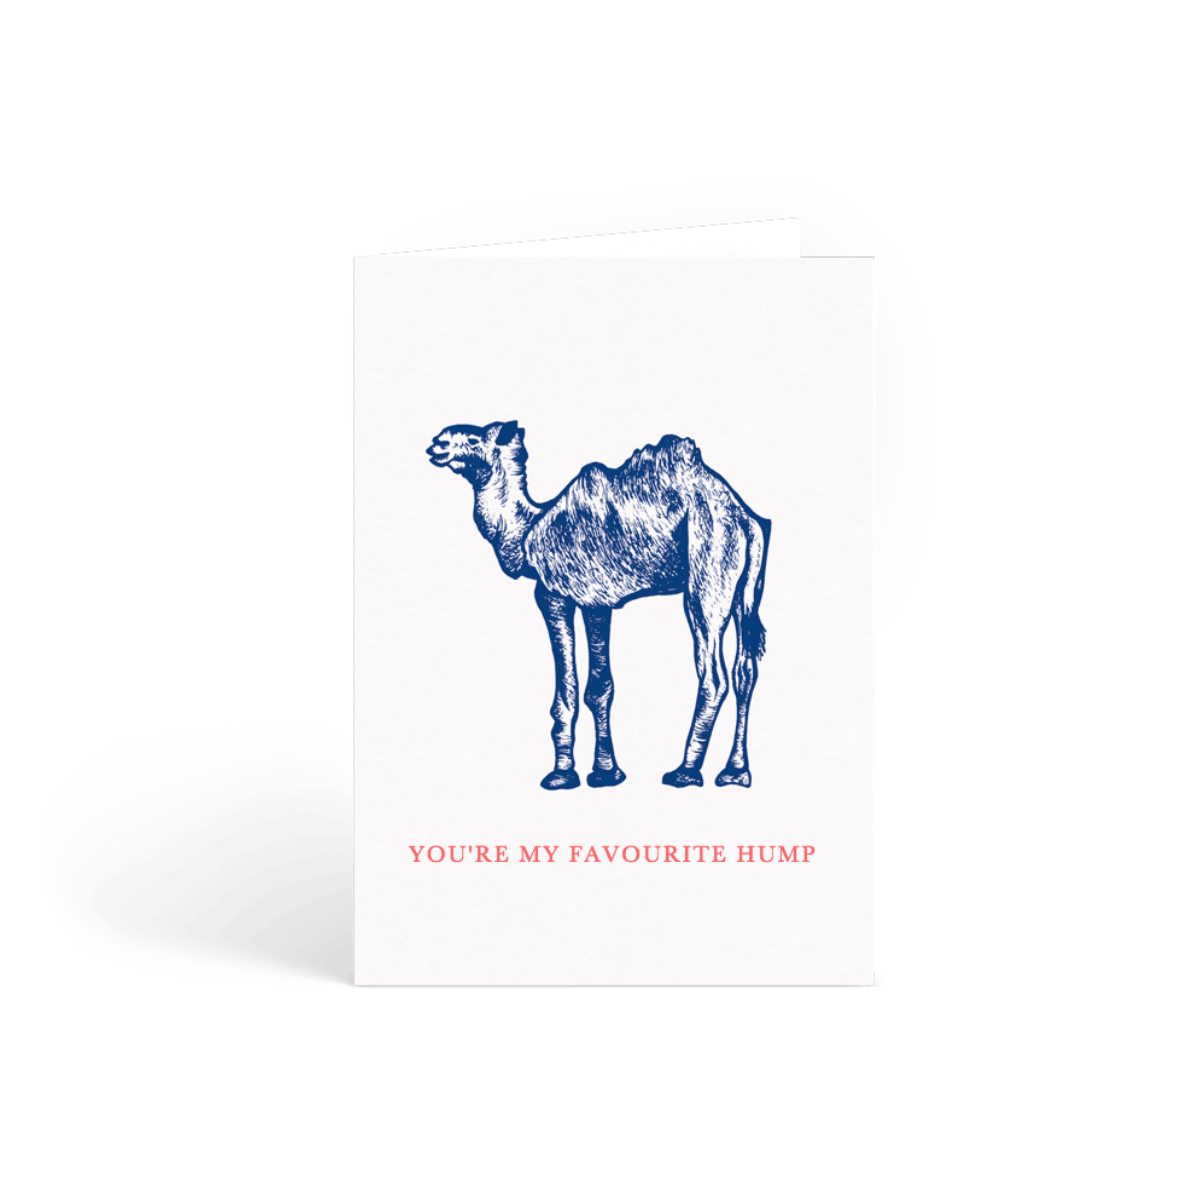 Https%3a%2f%2fwww.papier.com%2fproduct image%2f16395%2f2%2fhump day camel 4332 avant 1484660072.png?ixlib=rb 1.1